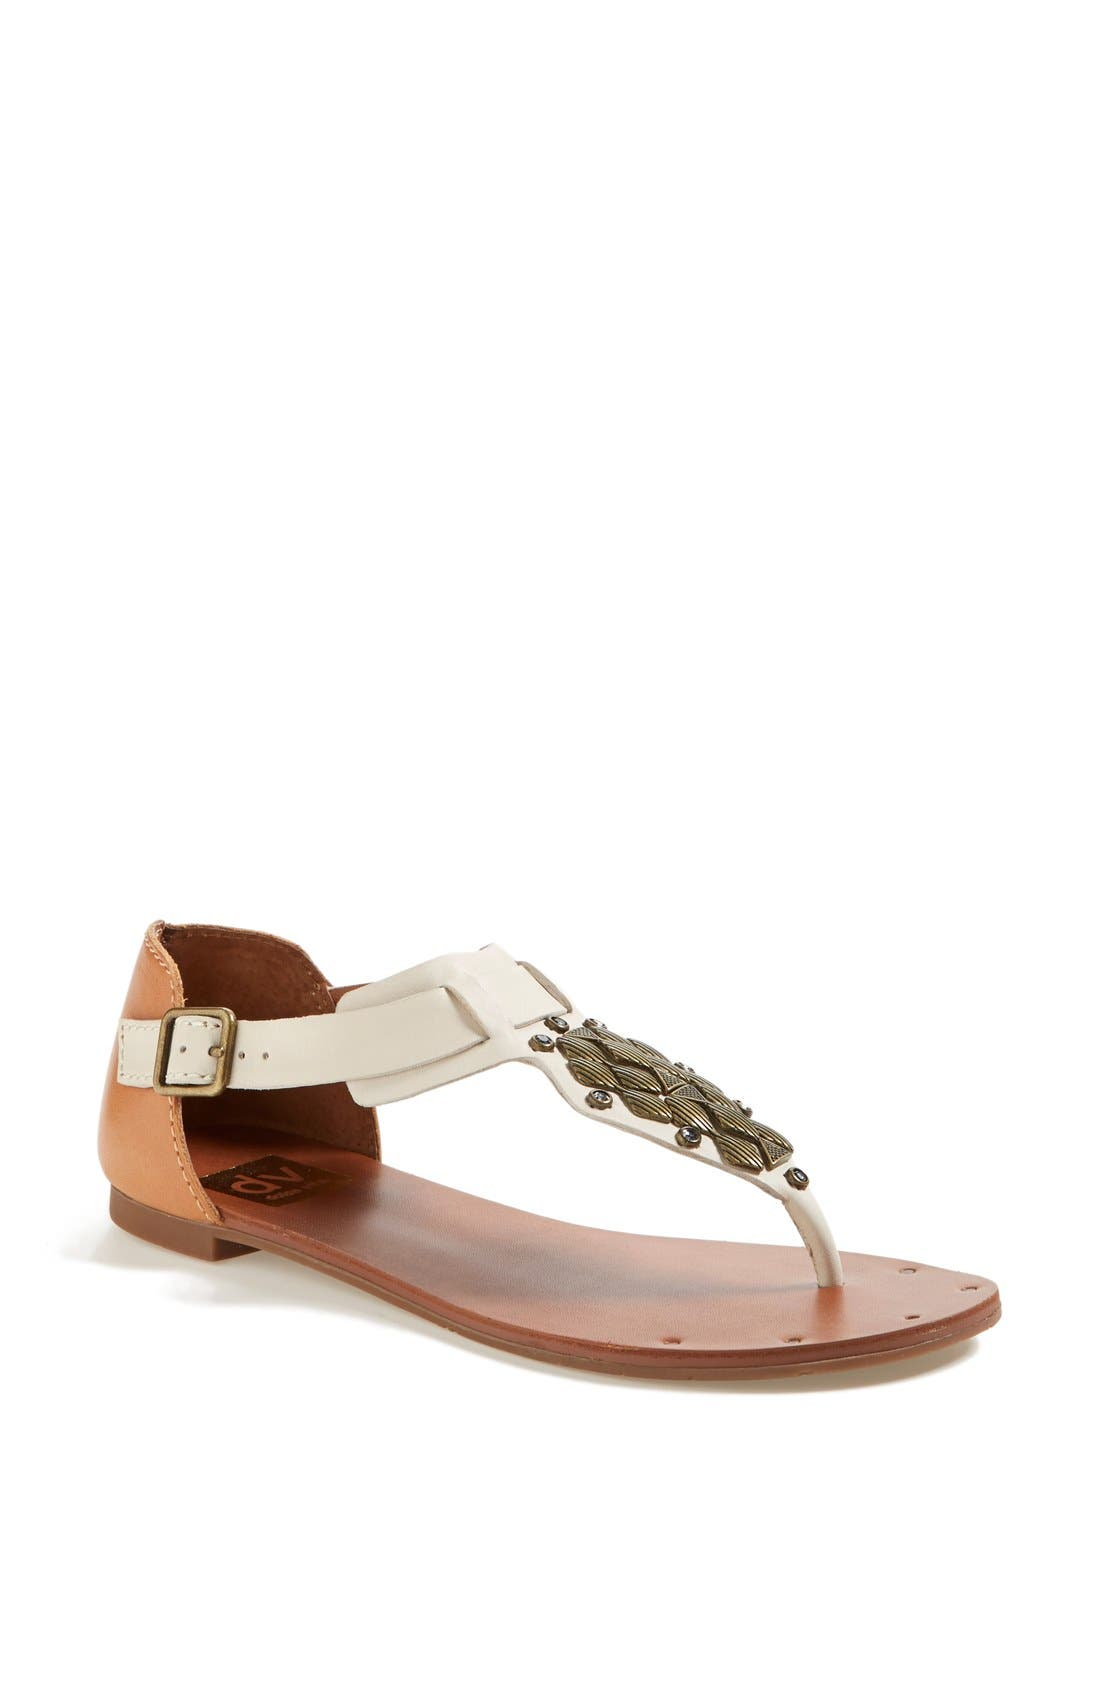 Alternate Image 1 Selected - DV by Dolce Vita 'Draya' Thong Sandal